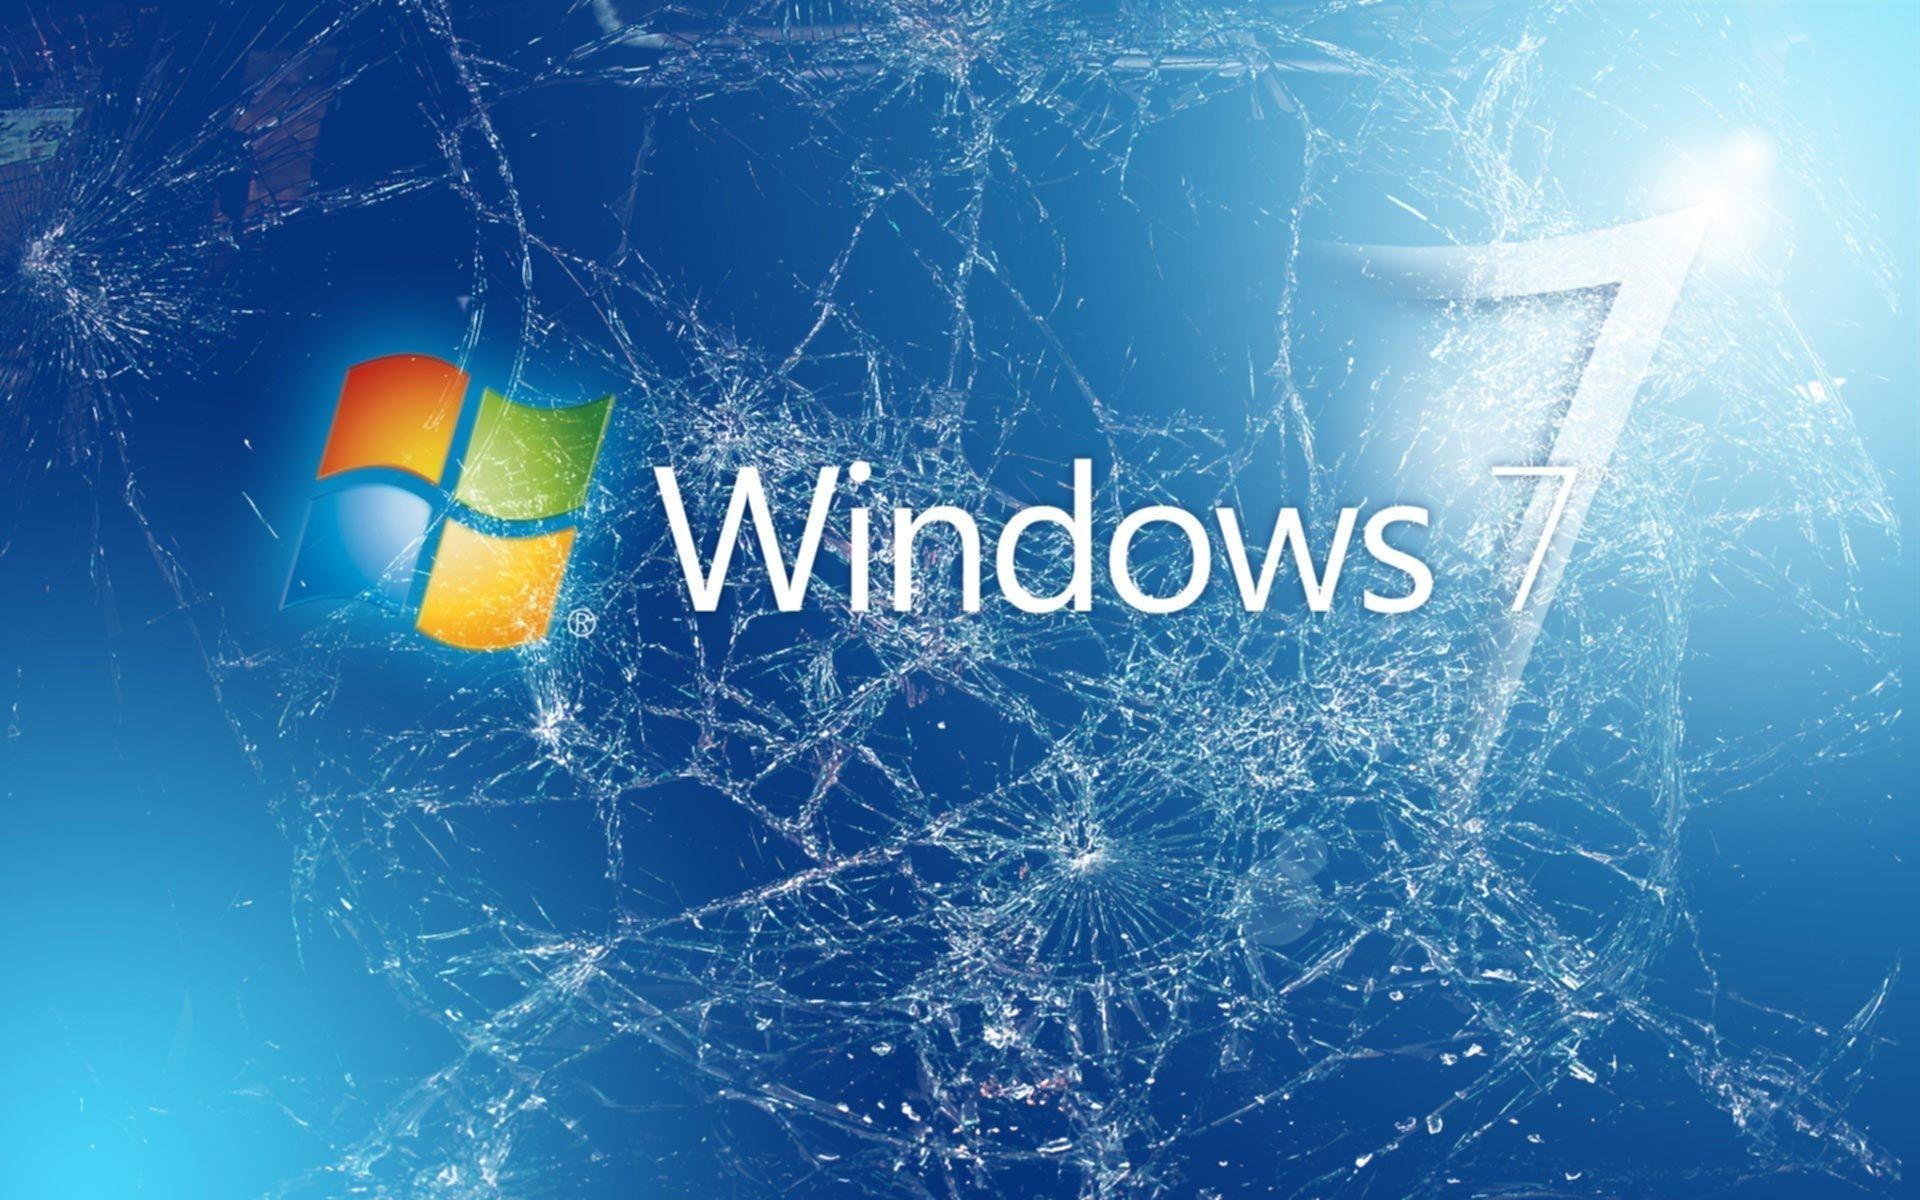 Windows Broken Wallpapers